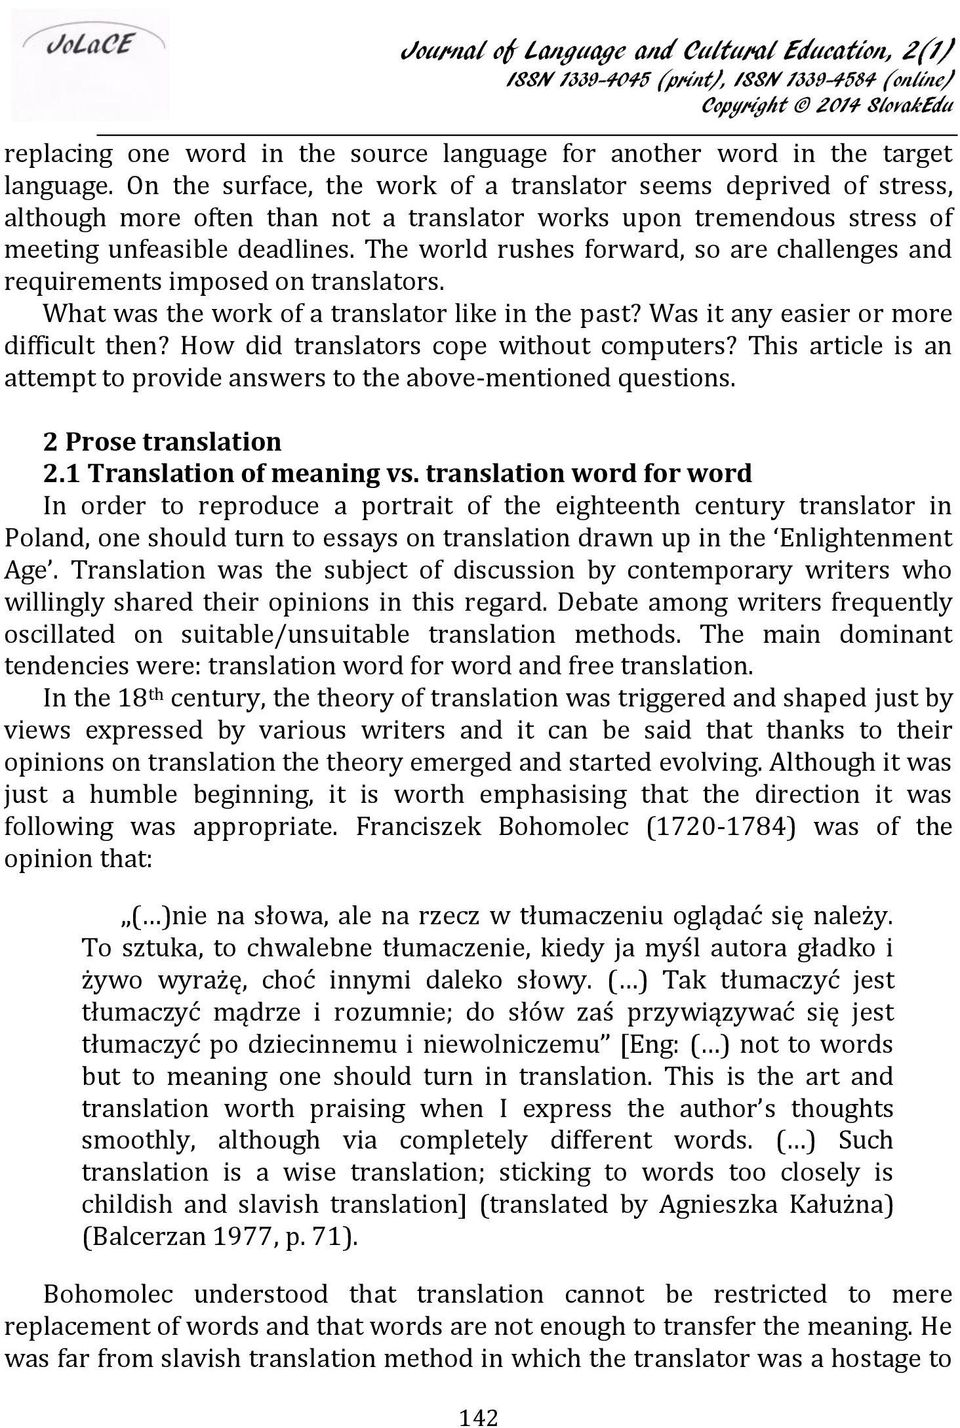 The world rushes forward, so are challenges and requirements imposed on translators. What was the work of a translator like in the past? Was it any easier or more difficult then?